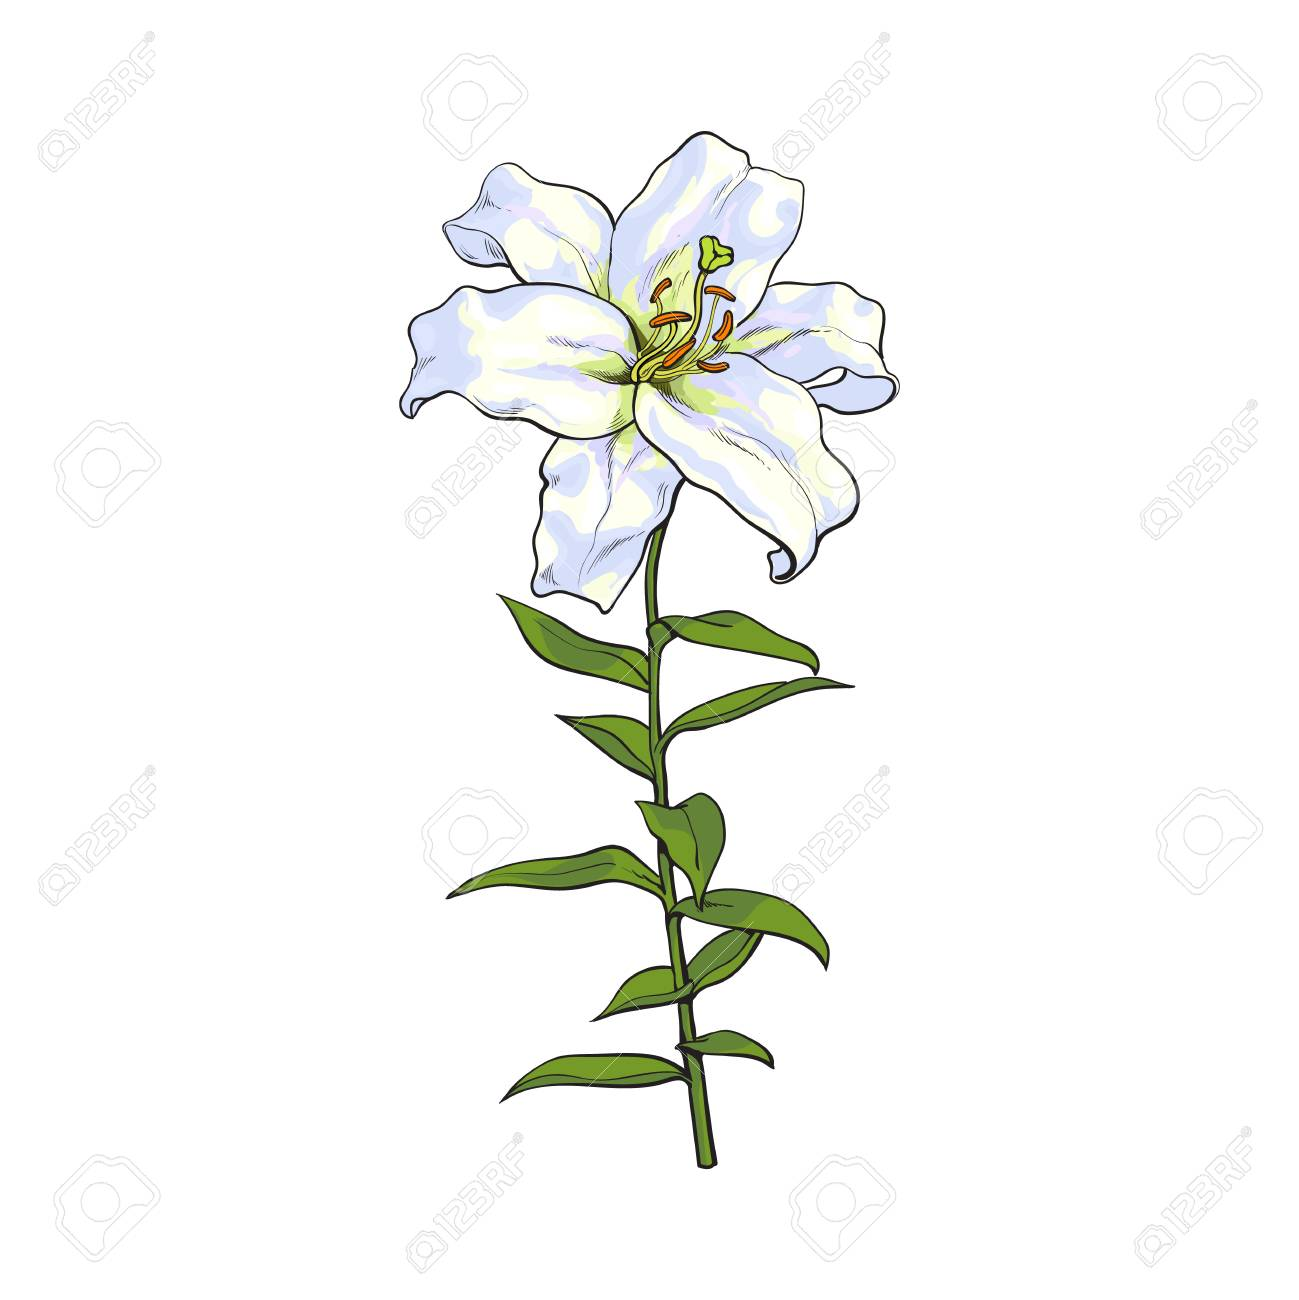 1299x1300 Single Hand Drawn White Lily Flower With Stem And Leaves, Front